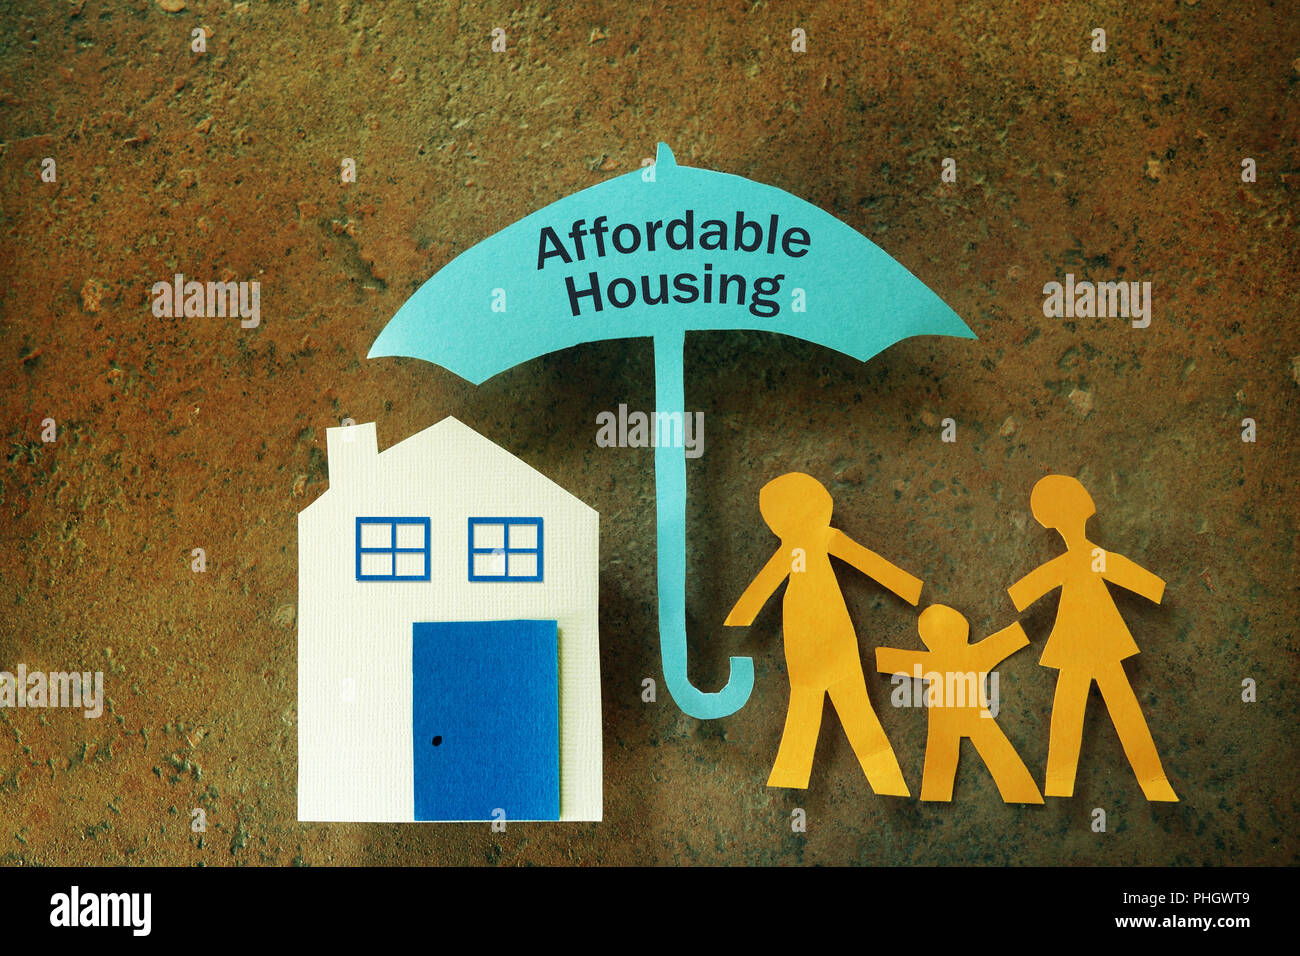 Affordable Housing family umbrella - Stock Image